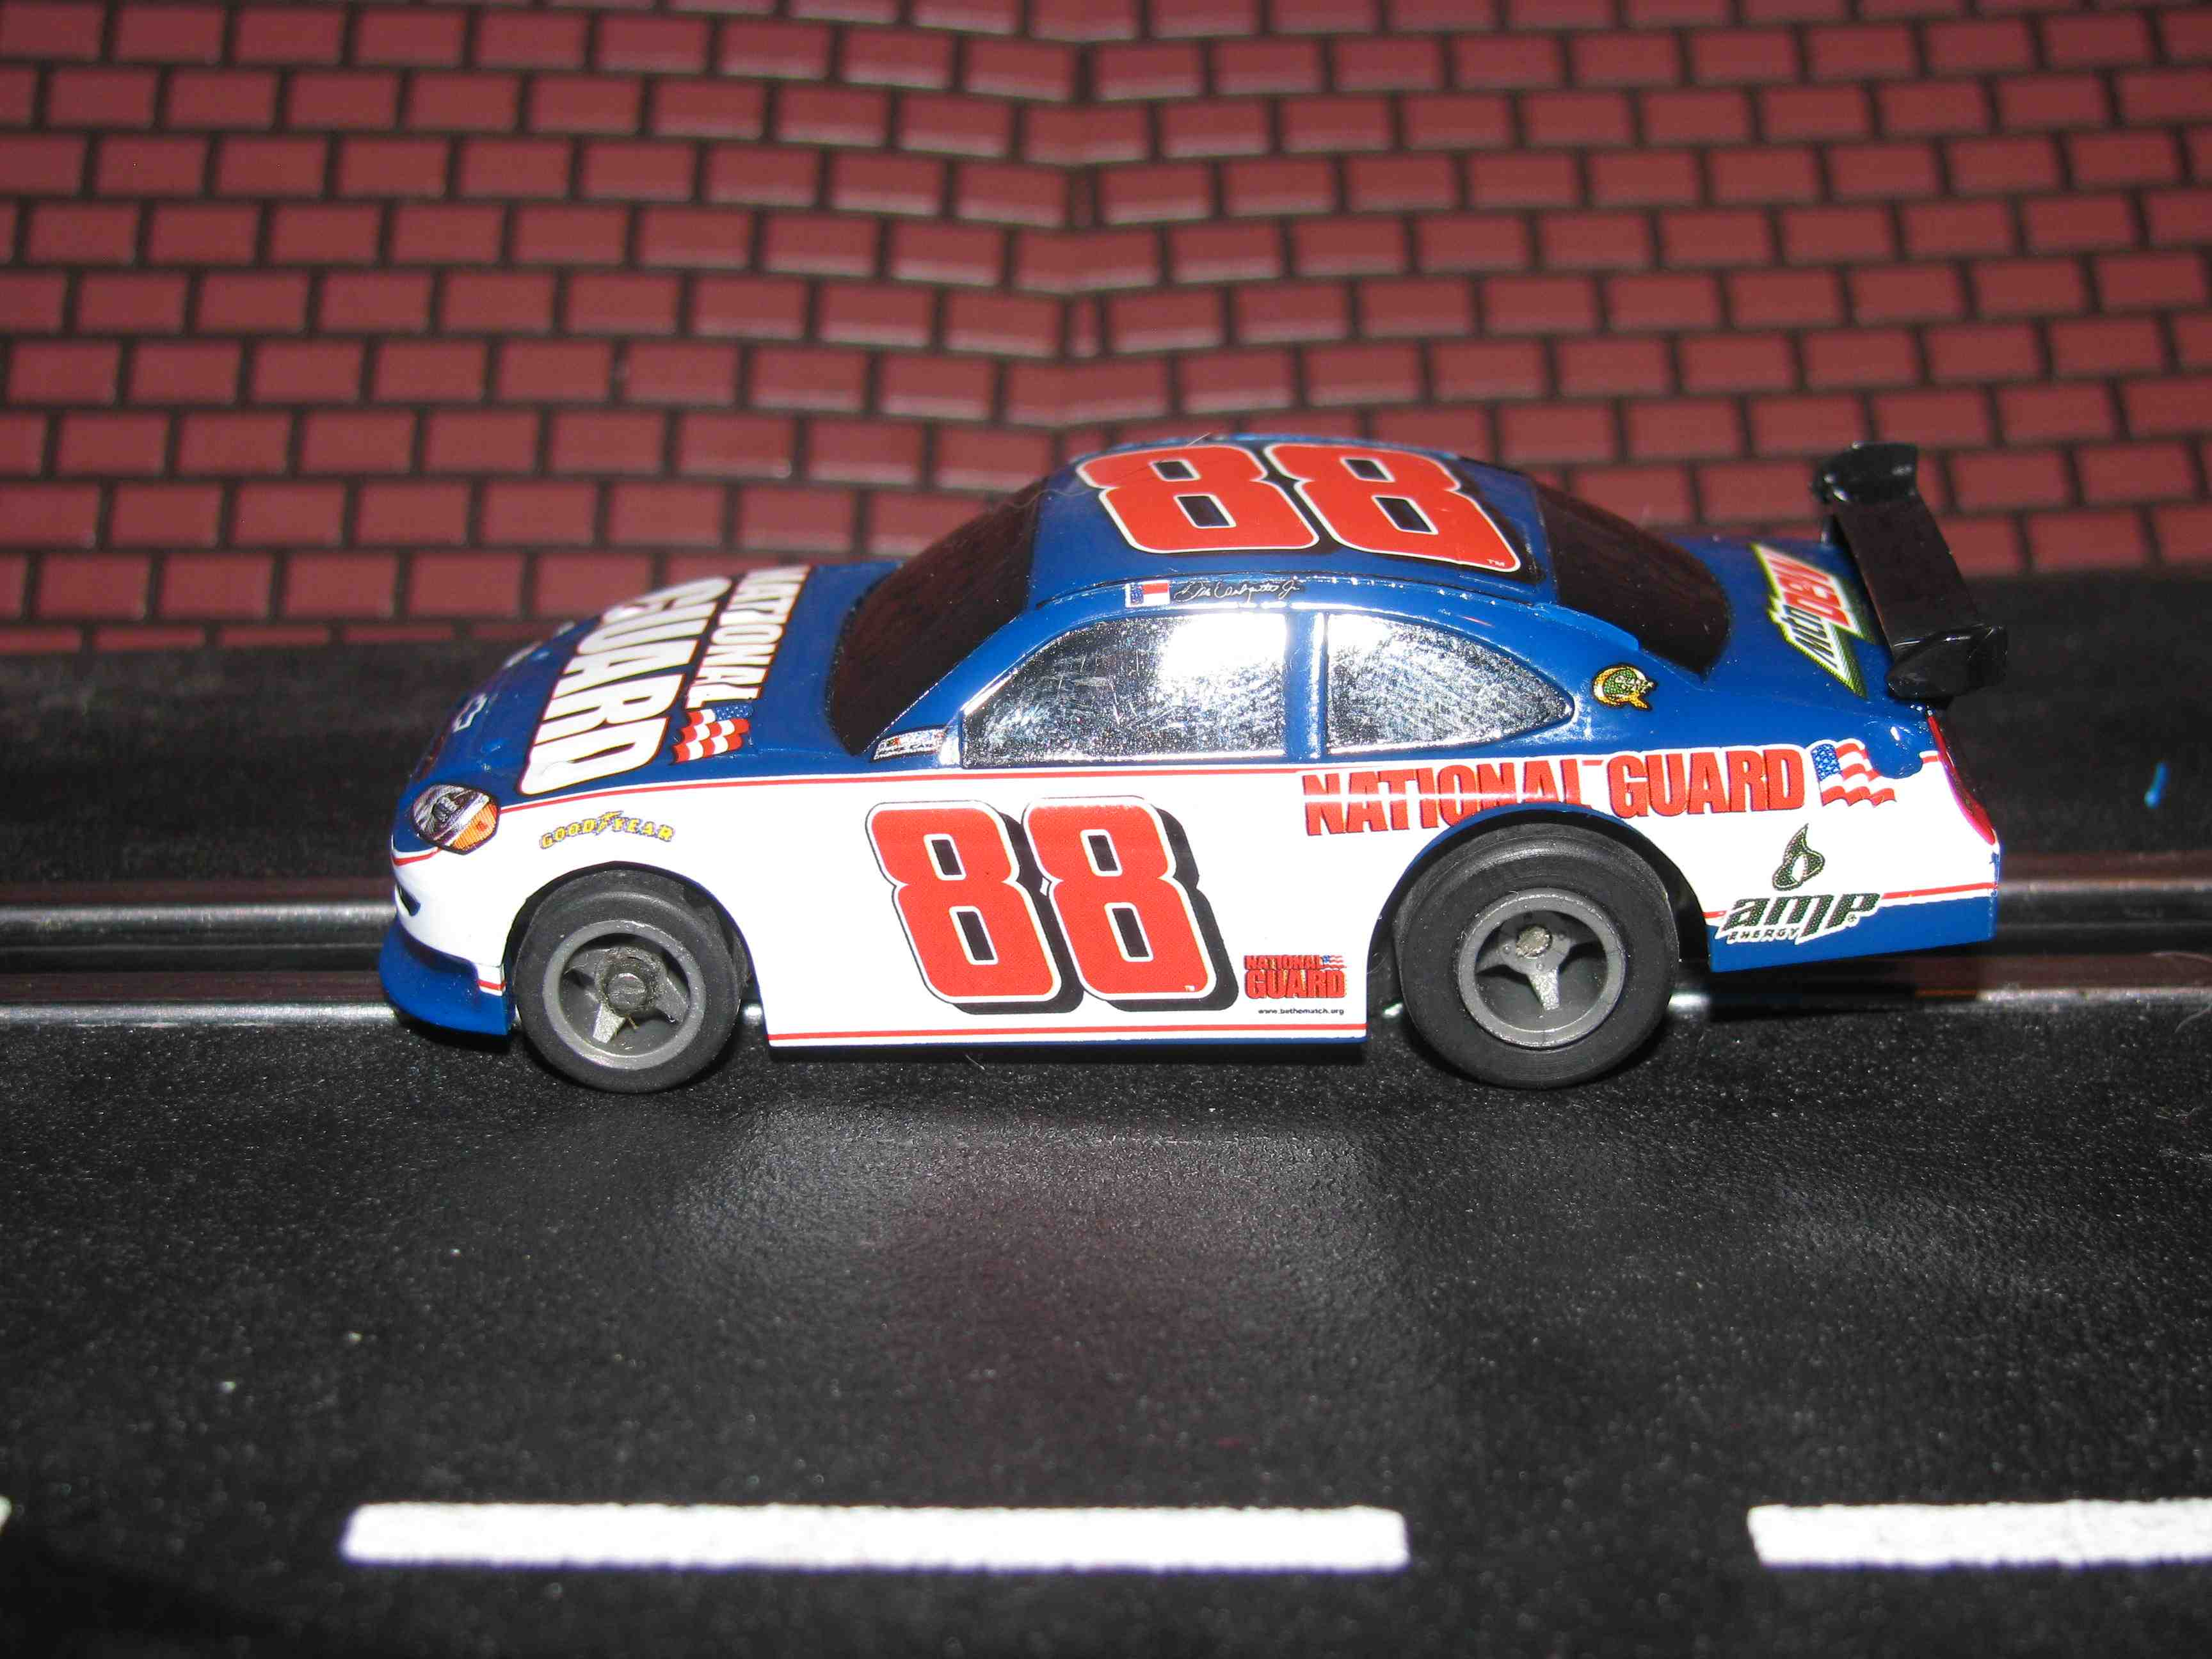 * SOLD * Tyco Like-Like HO Slot Car #88 Chevy Impala (National Guard) with Guide Post